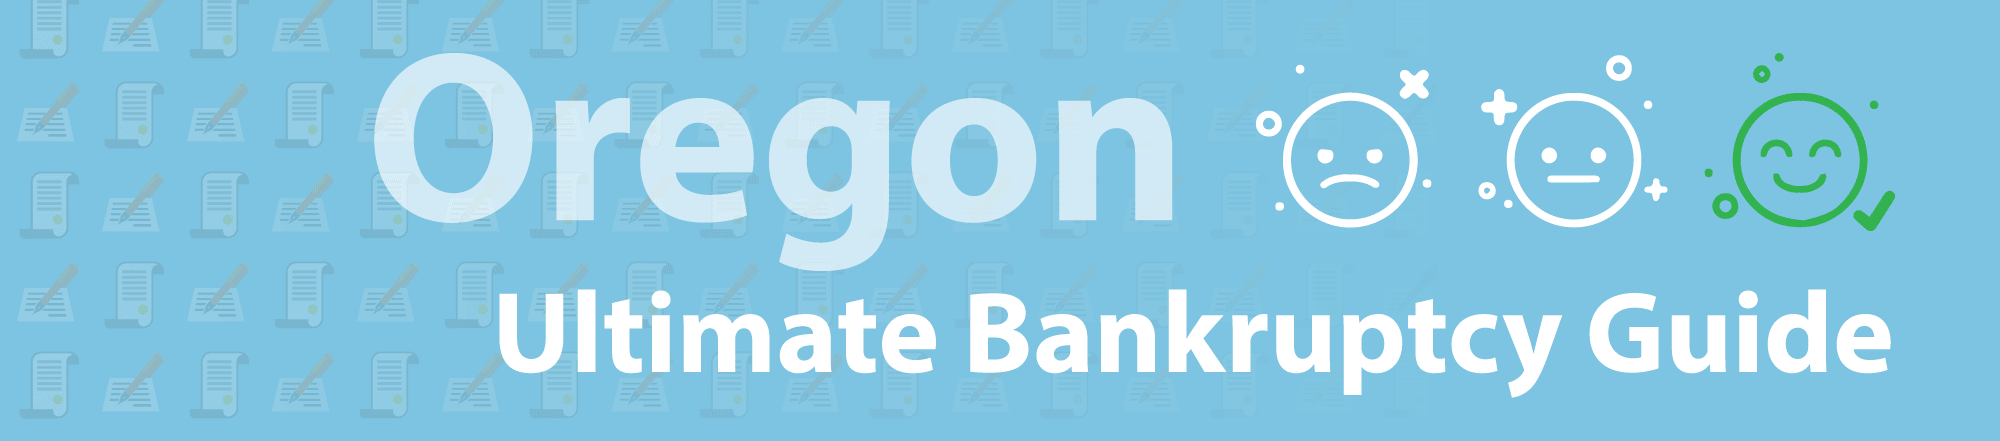 Oregon Bankruptcy Guide filing chapter 7 & chapter 13